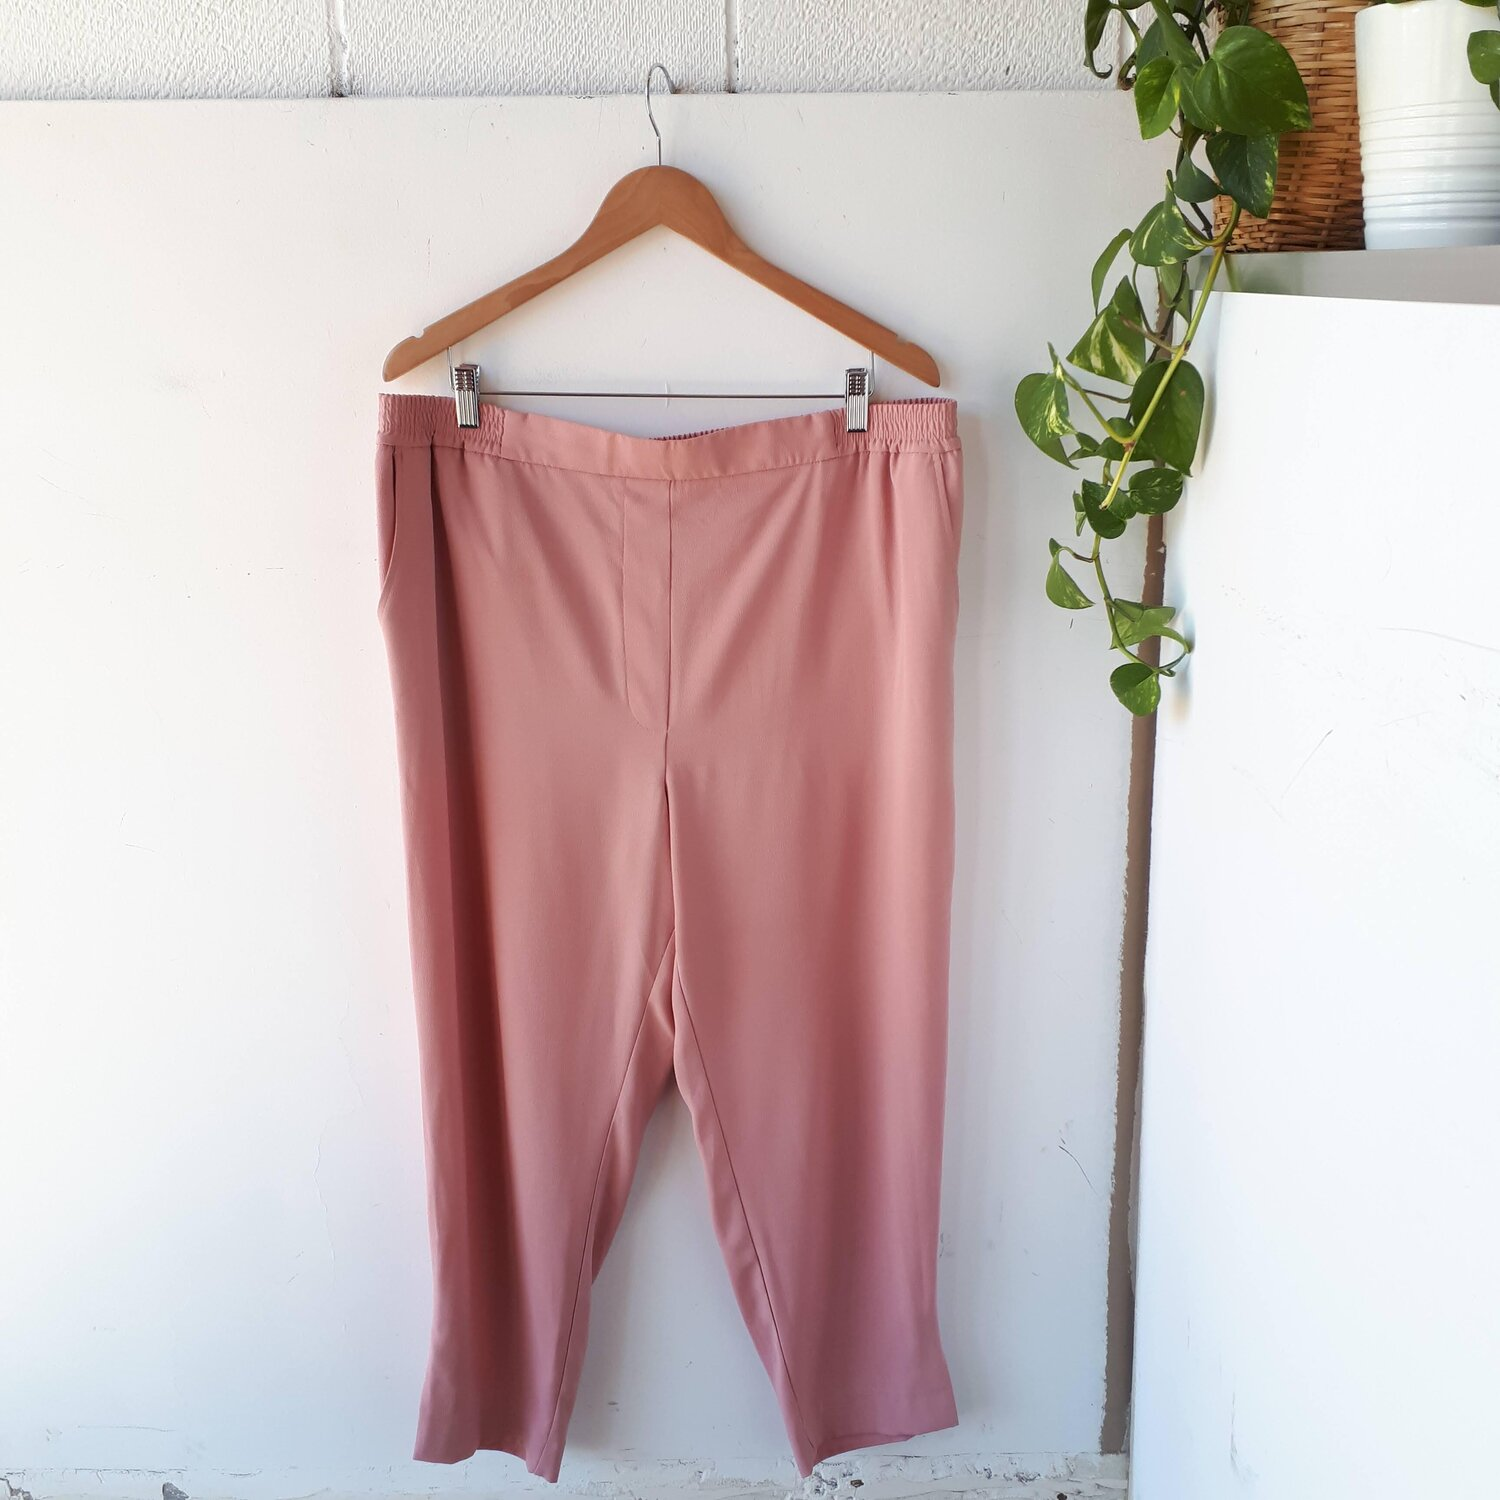 Anthropologie rose pants, Size XL  Red Pony Consignment